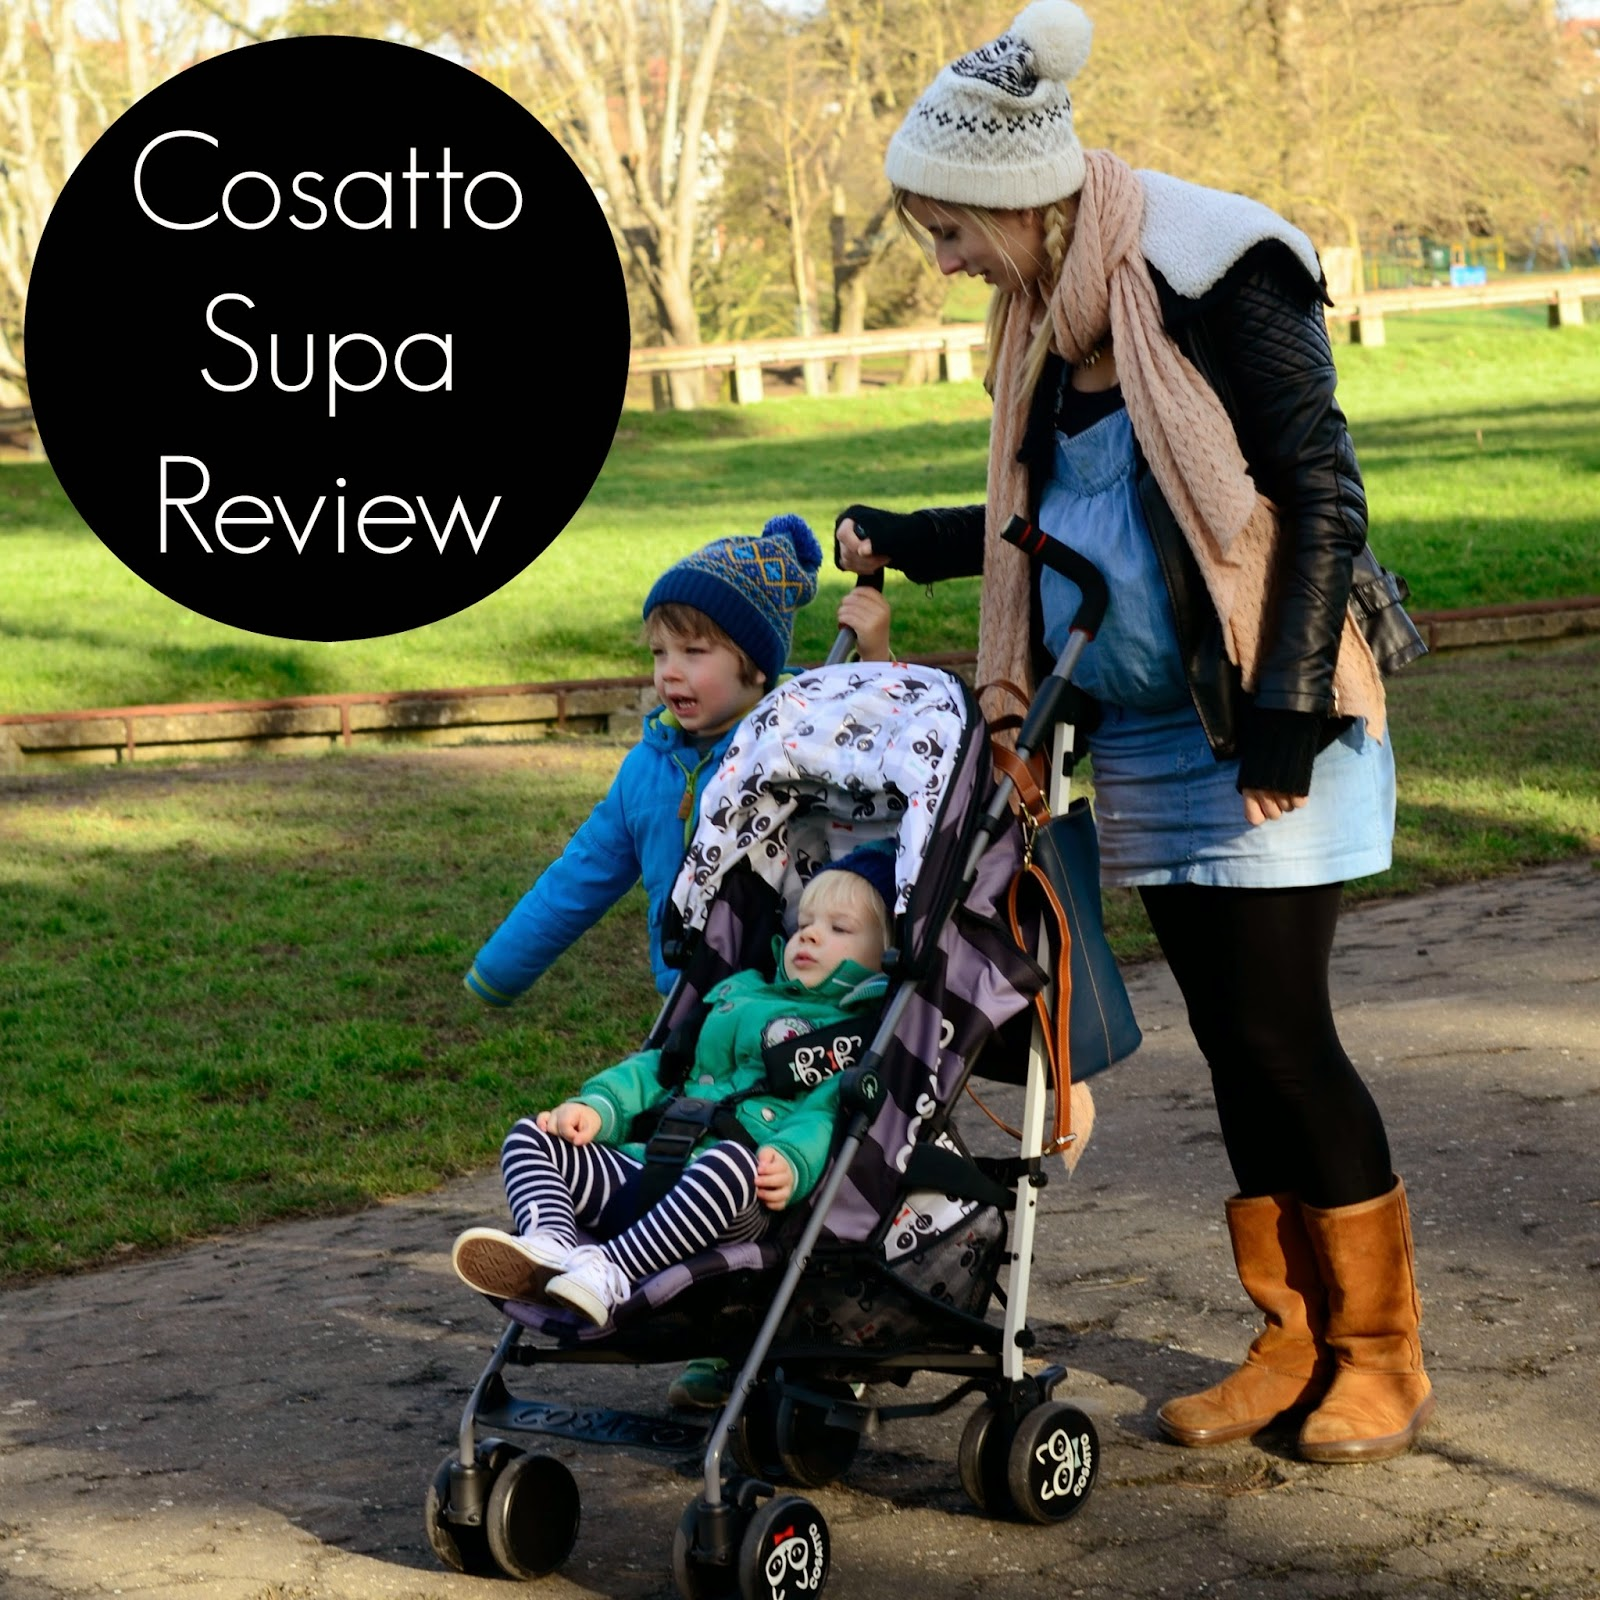 raccoon riot, Cosatto supa, supa raccoon review